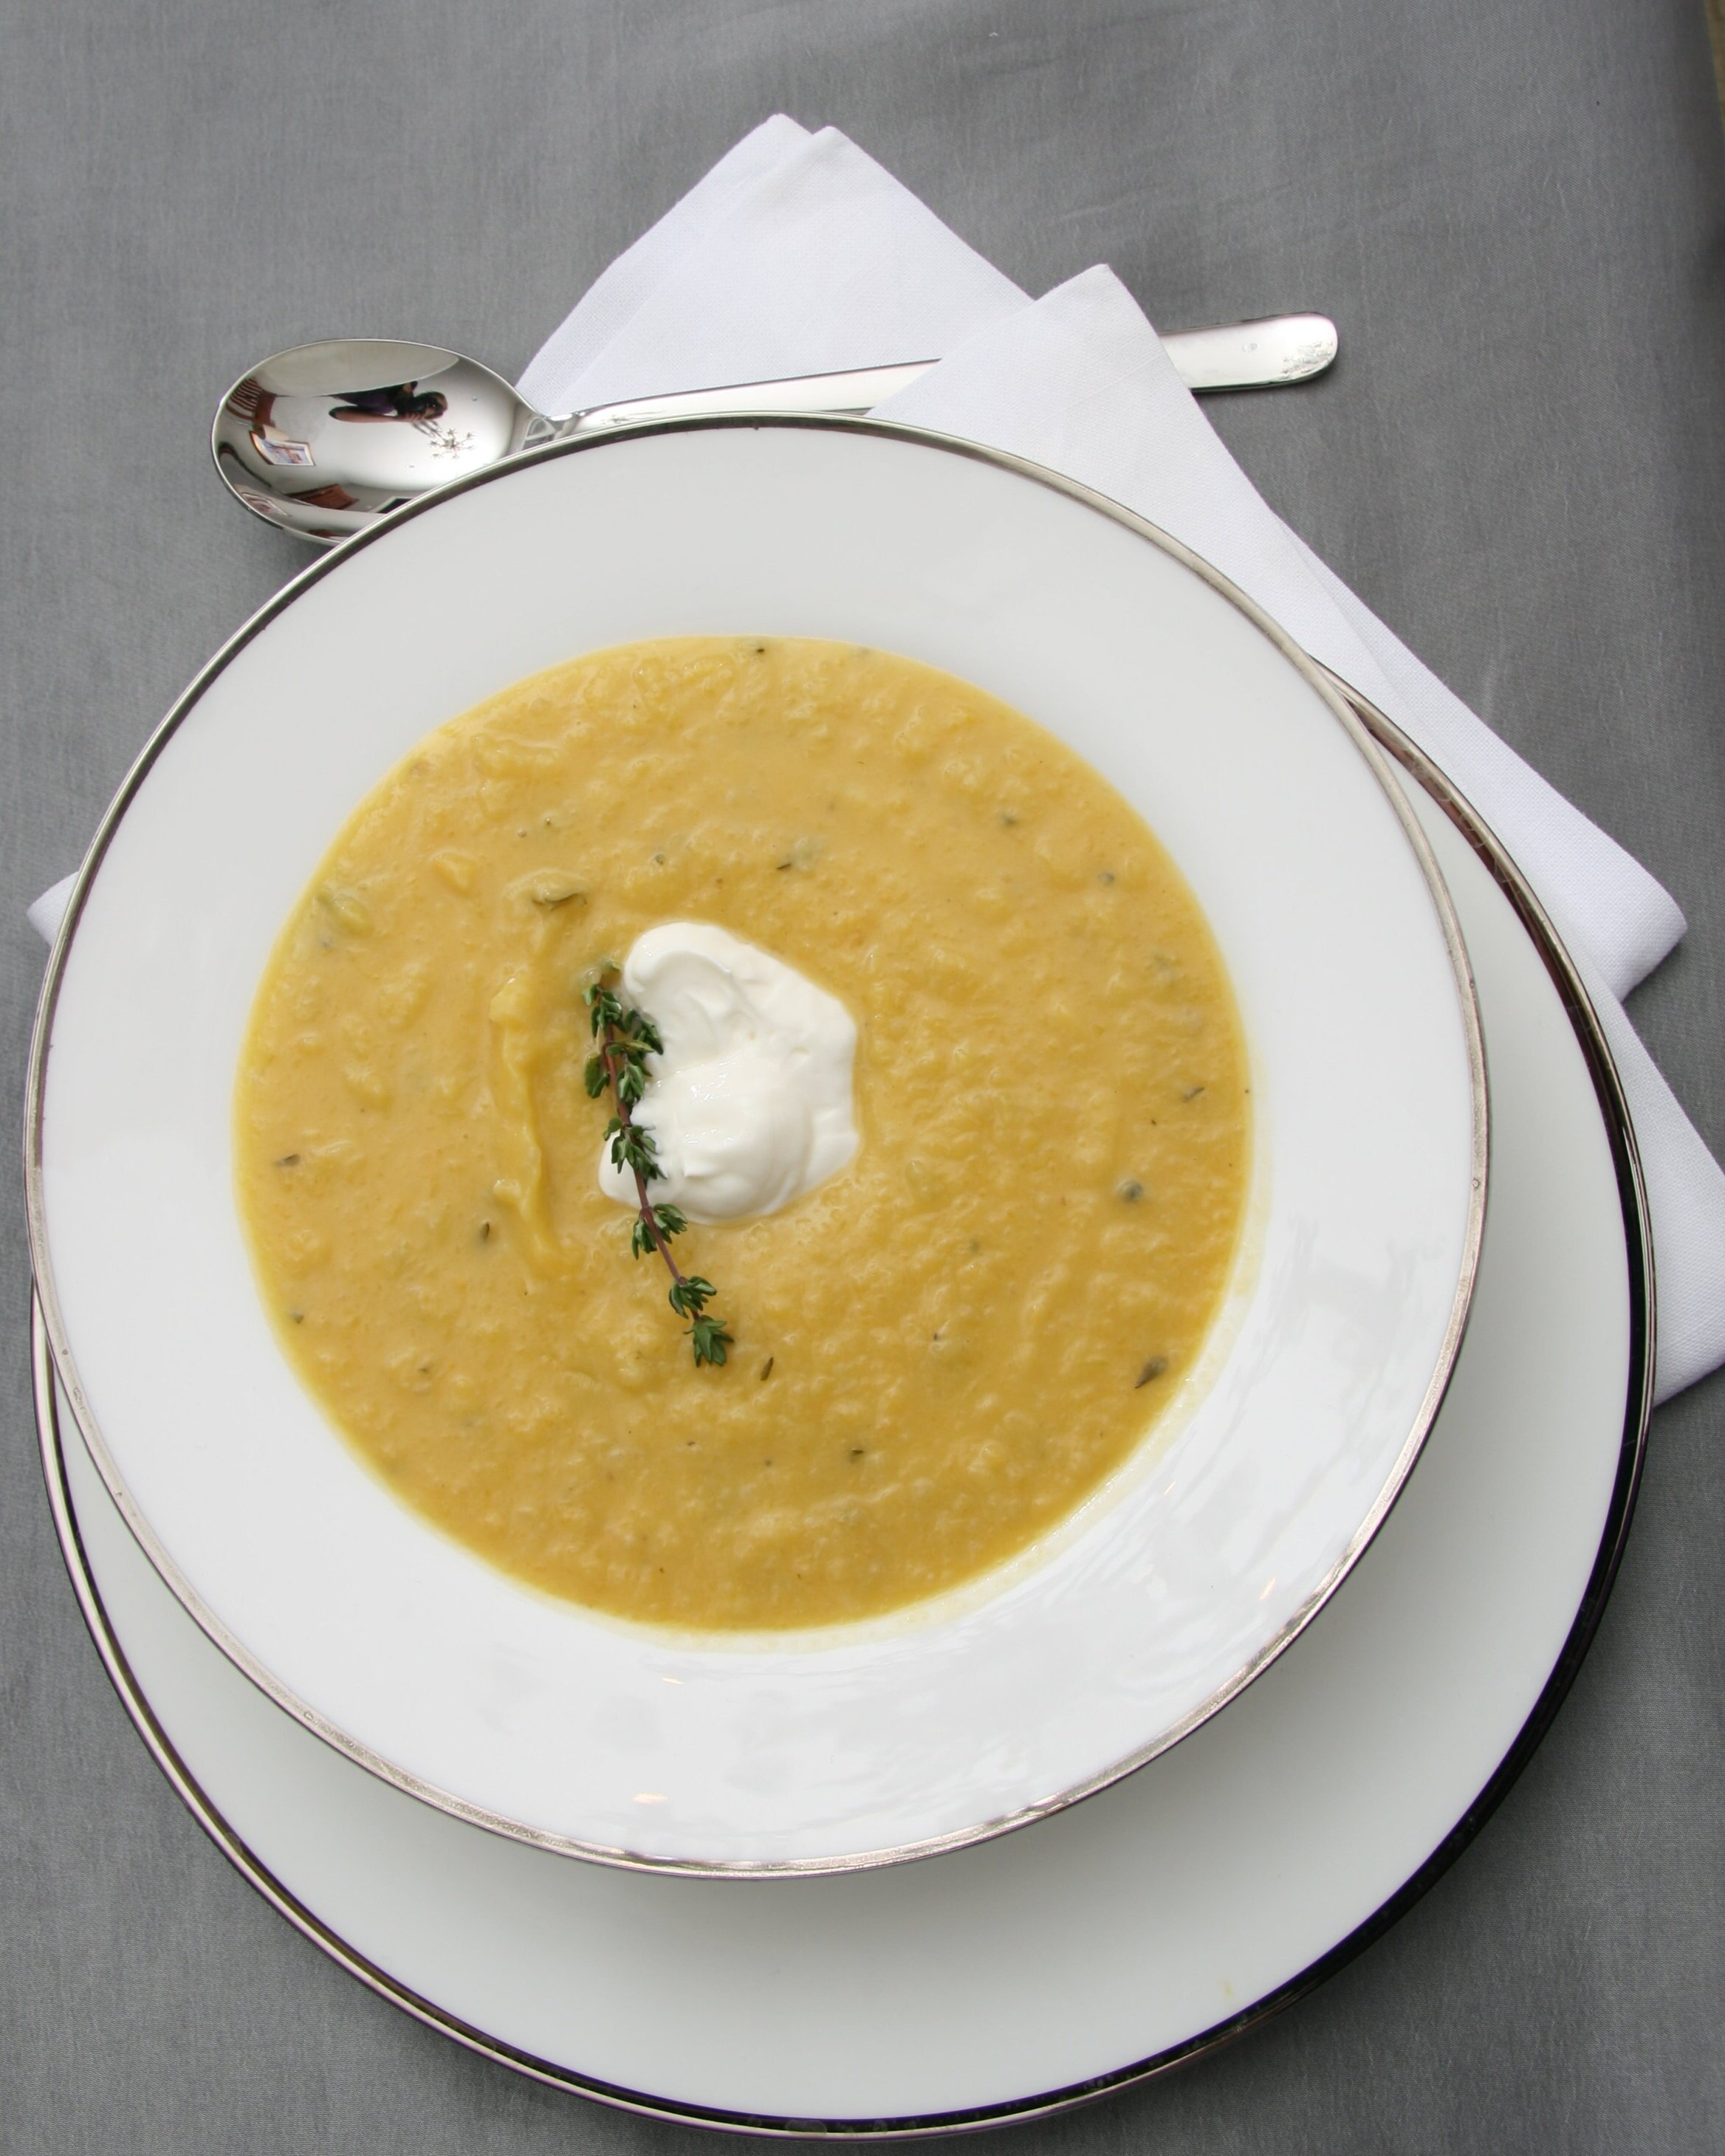 Roasted butternut squash and pear soup with crème fraiche.JPG